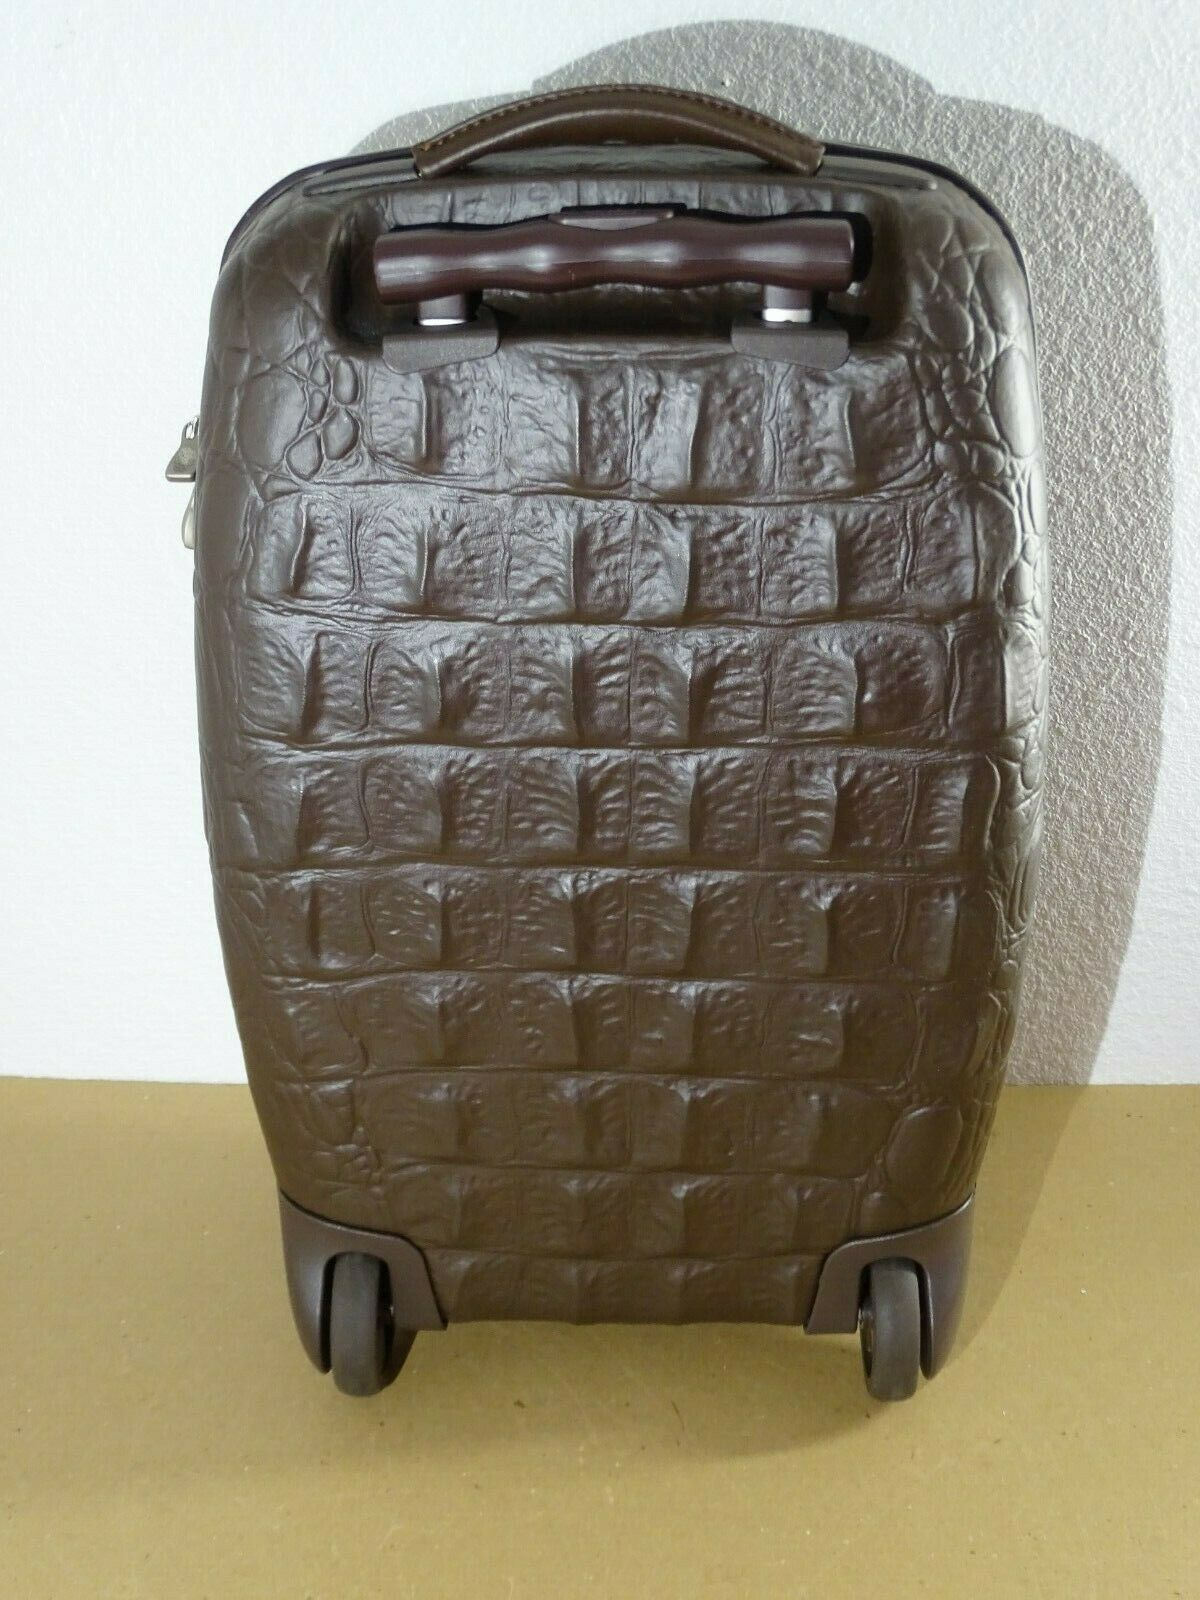 Samsonite Alexander McQueen Black Label Carry-On Suitcase Luggage Crocodile image 3